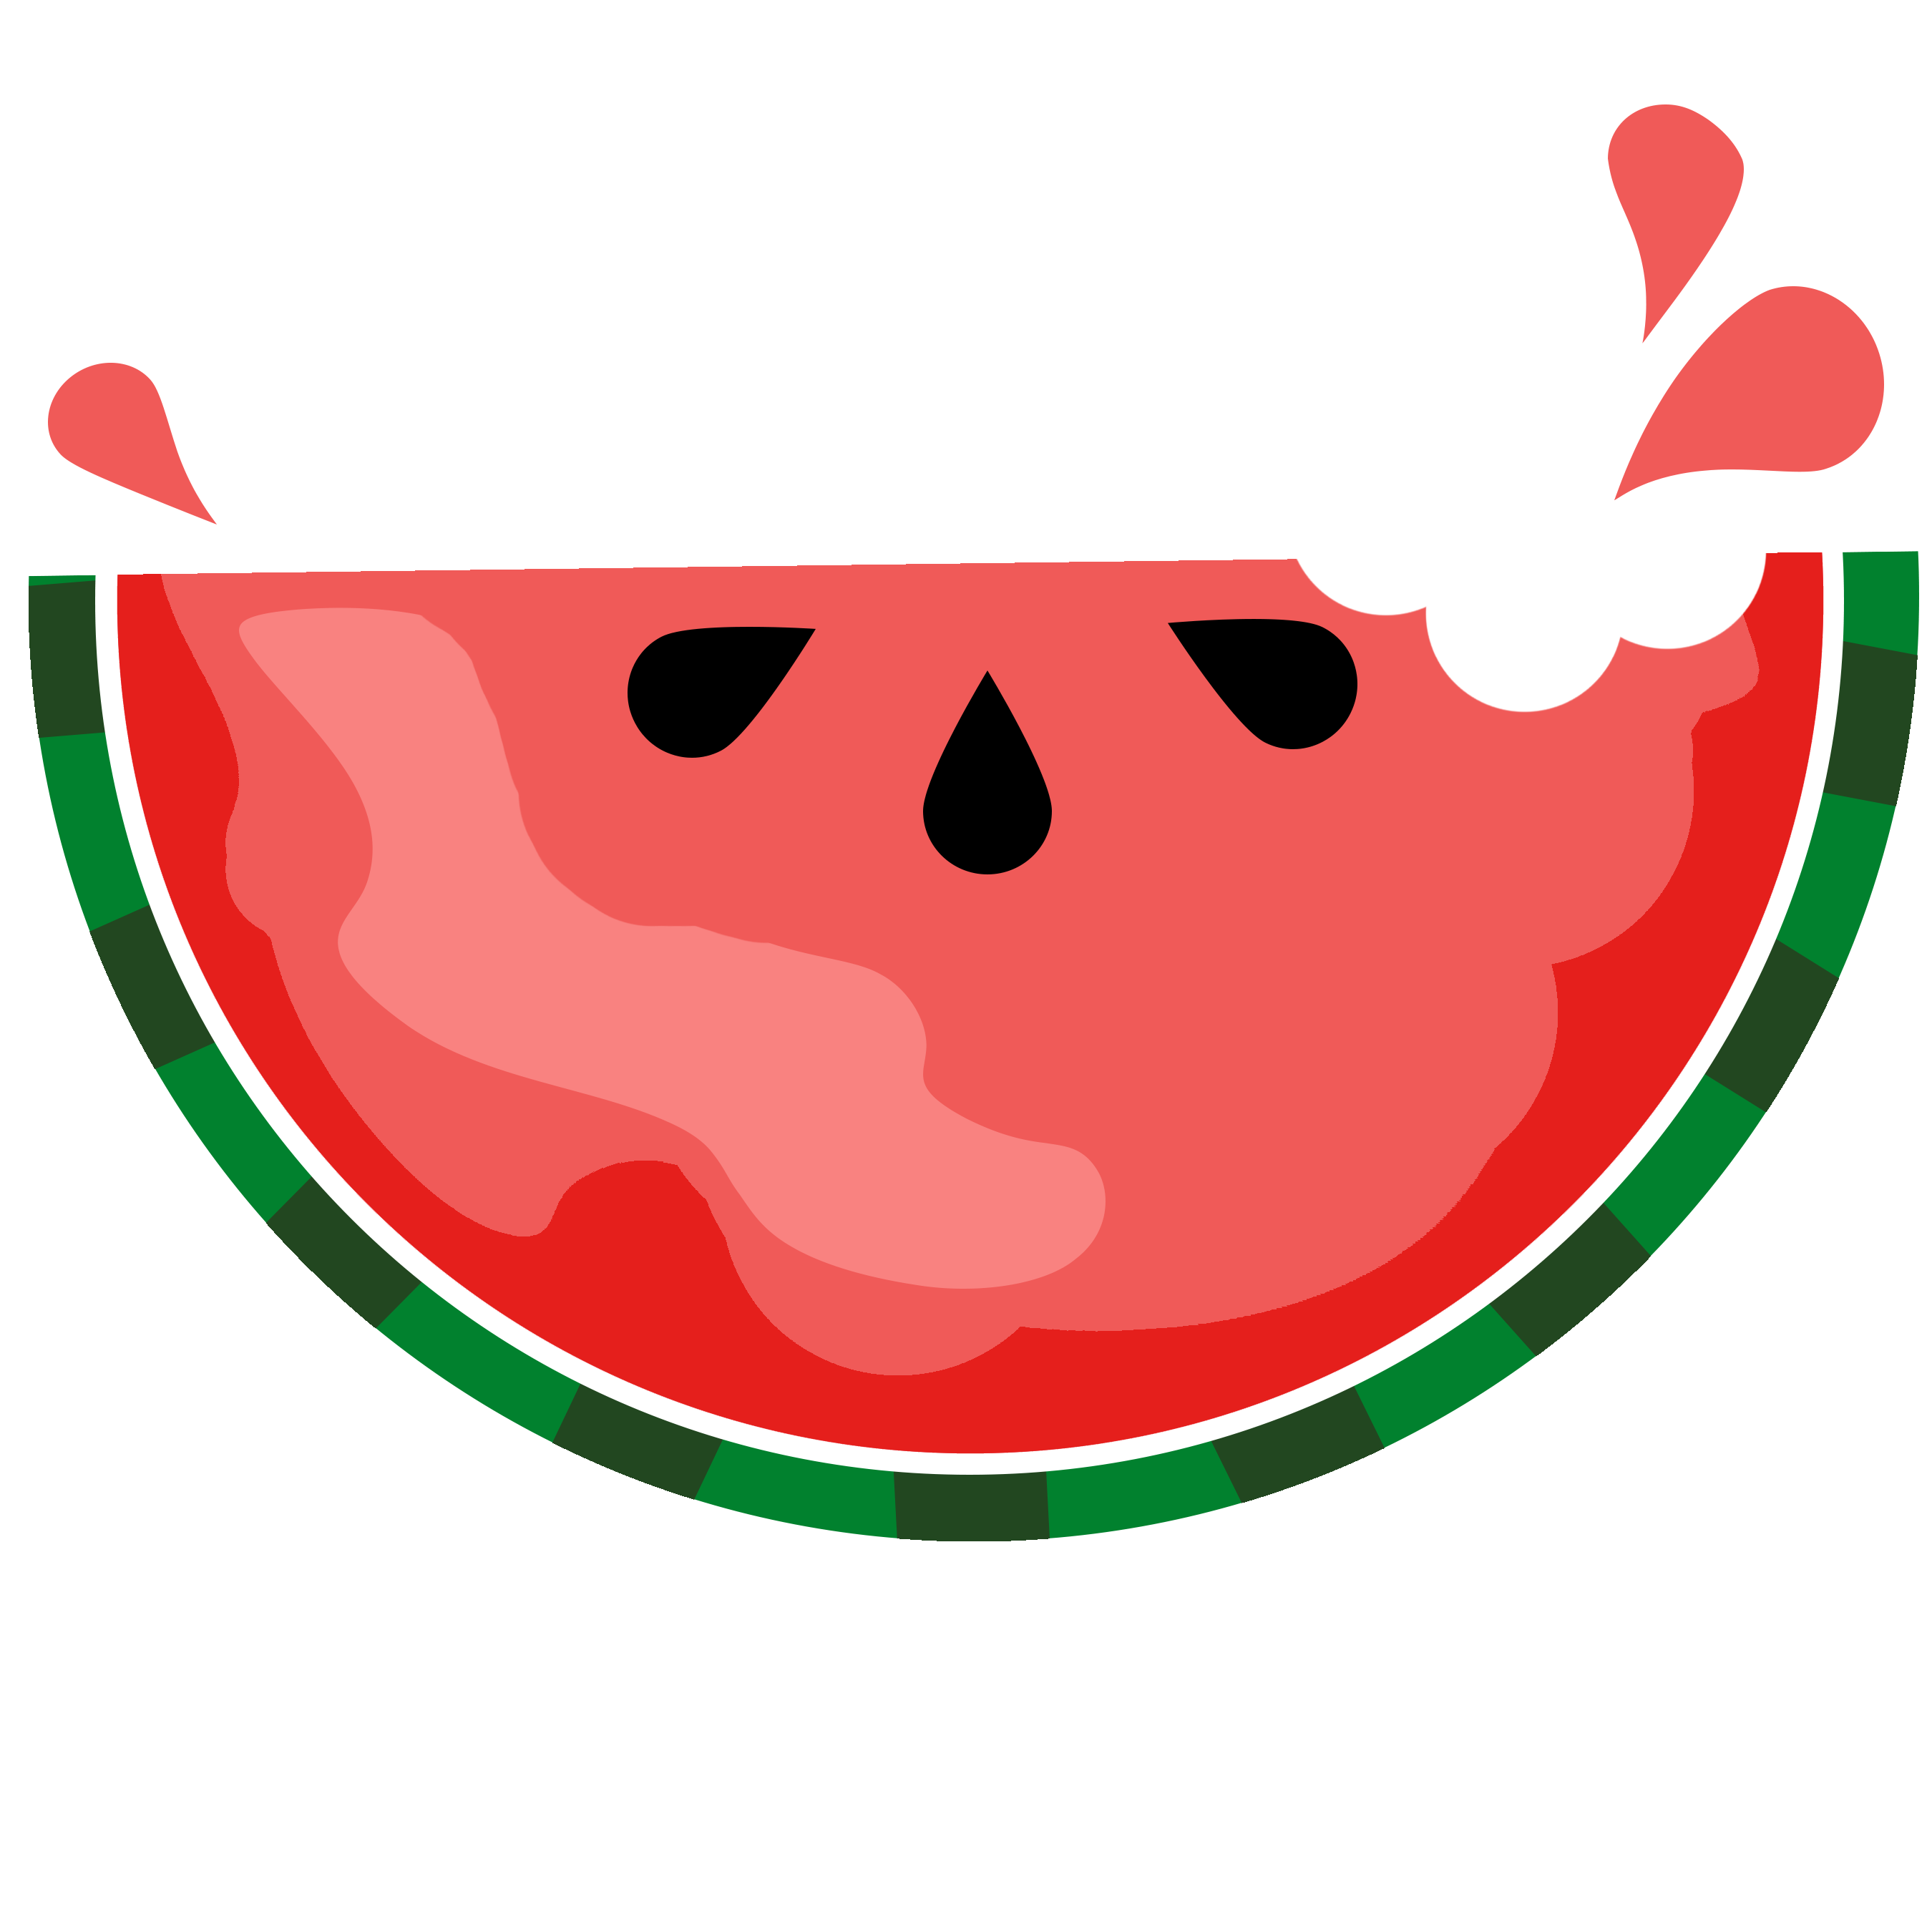 Watermelon clip art 7